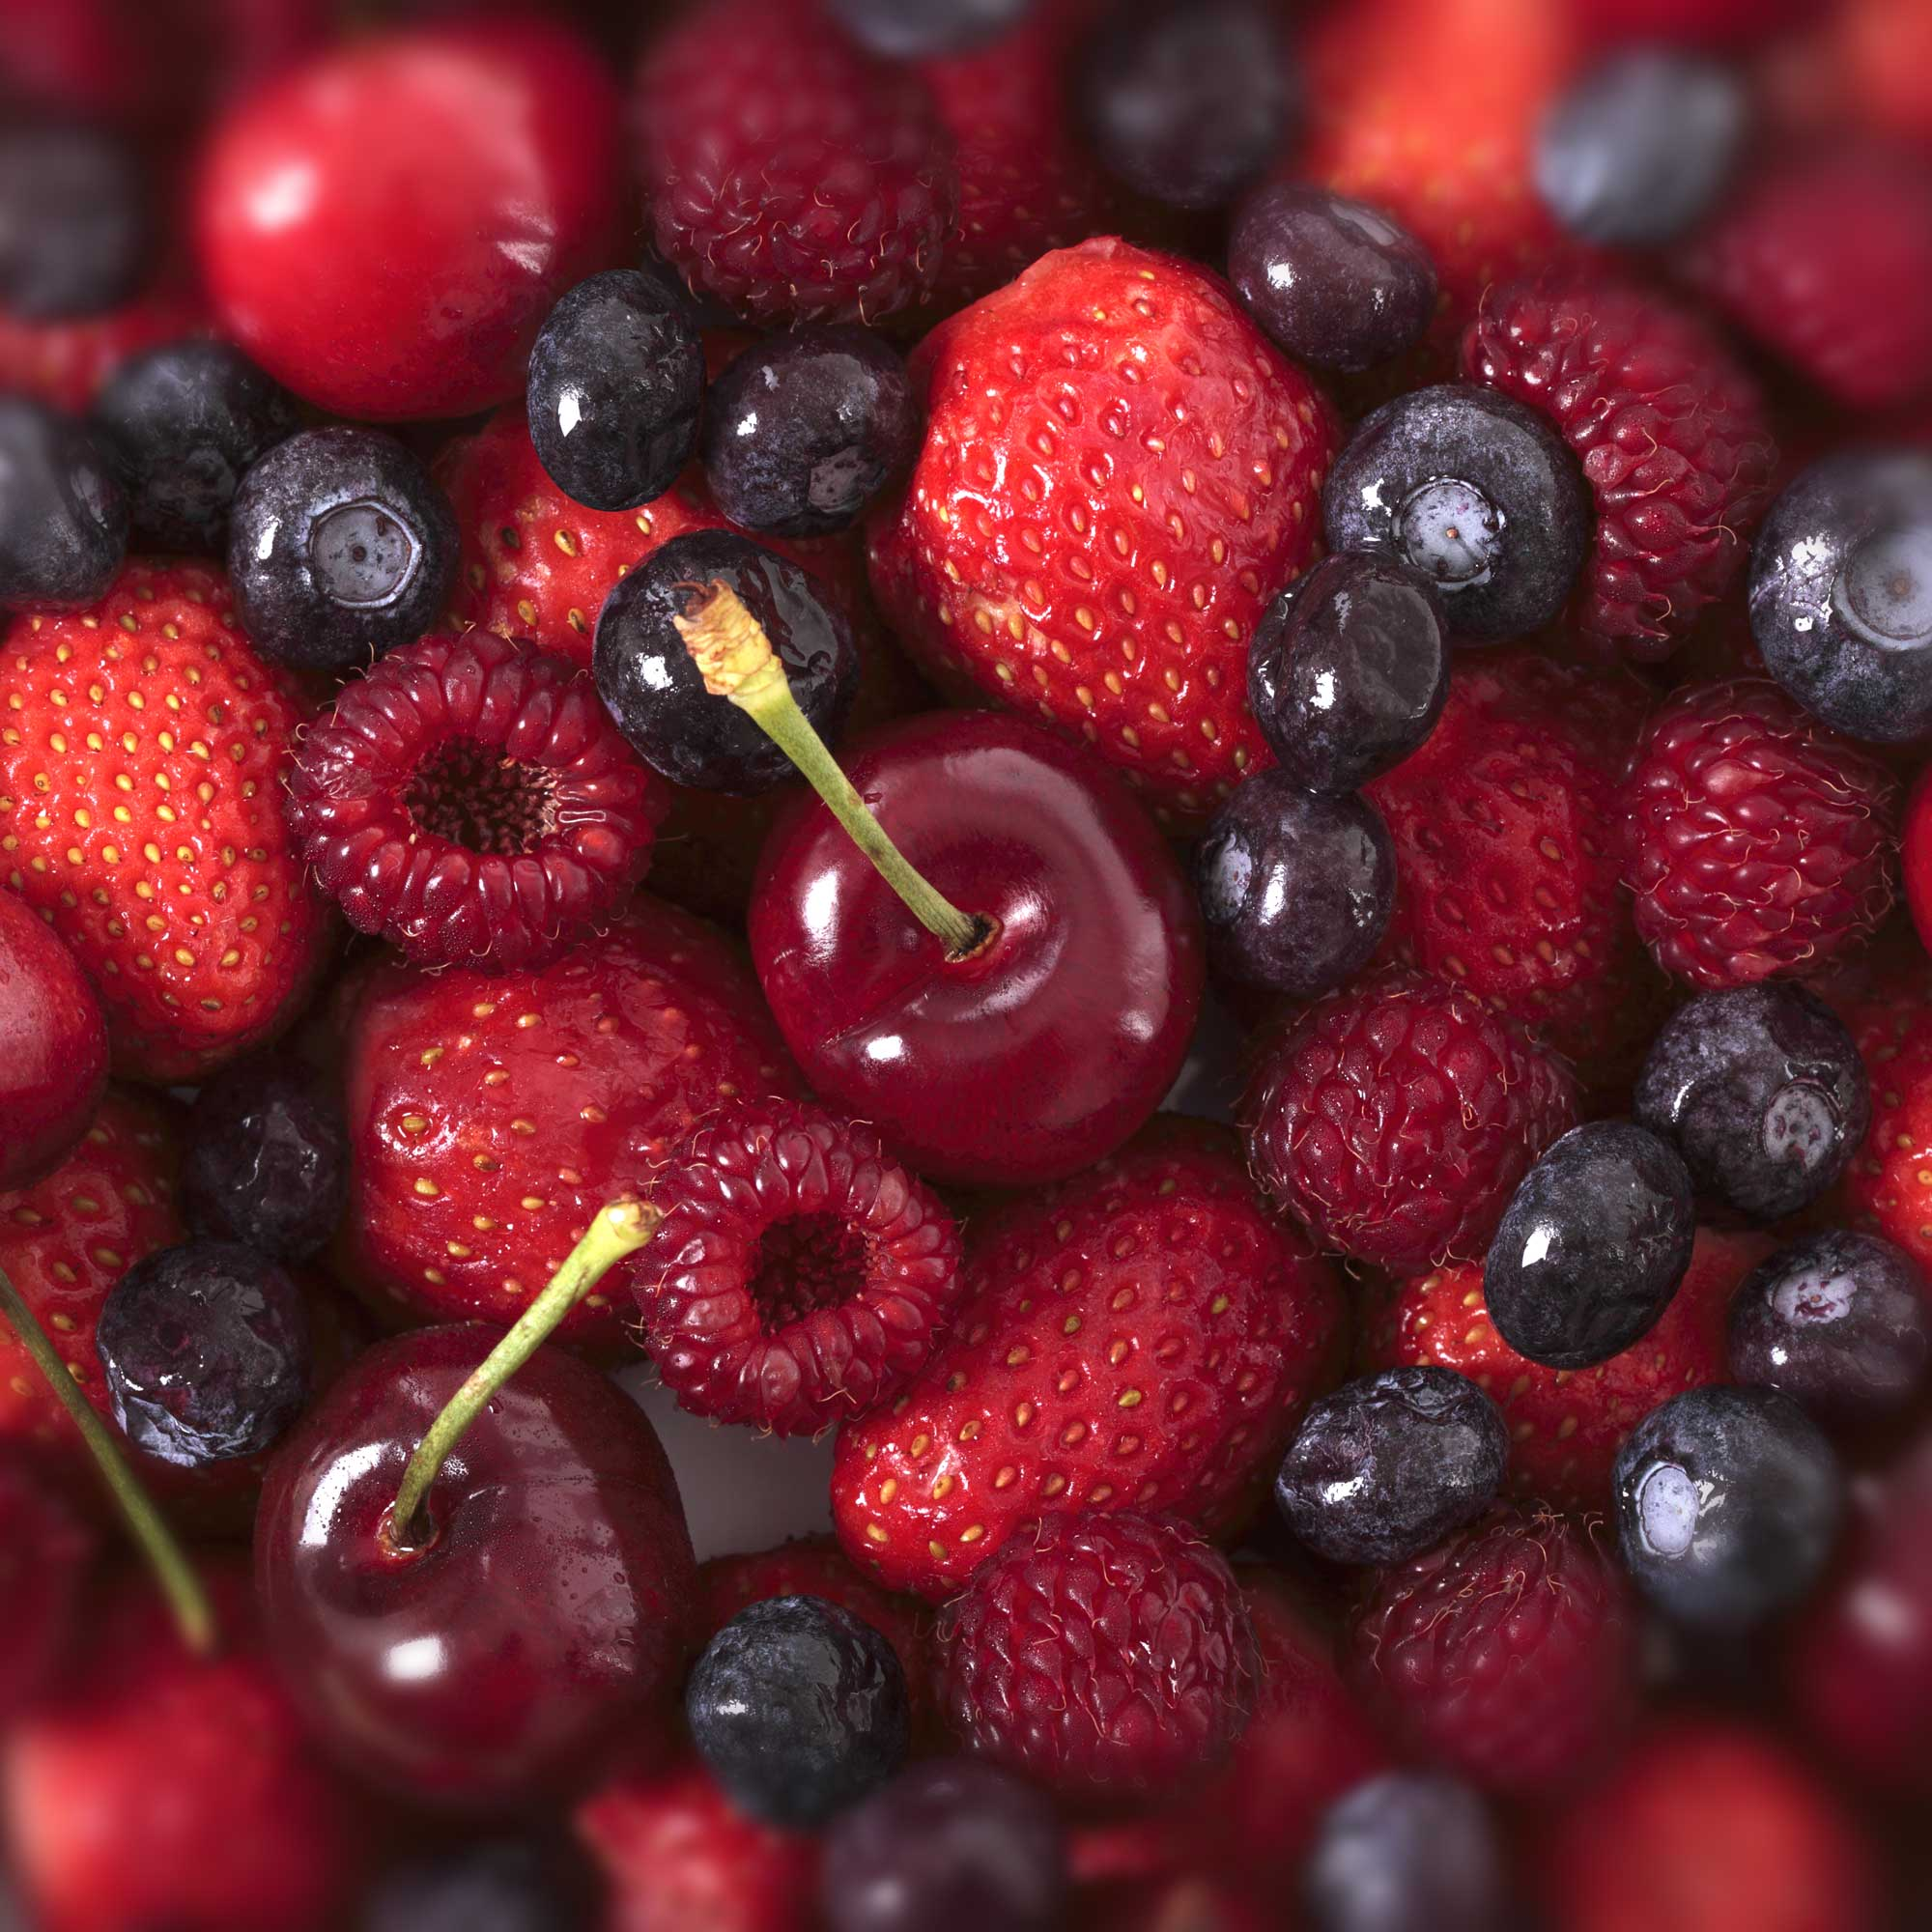 FROZEN FRUITS & BERRIES - 5 products